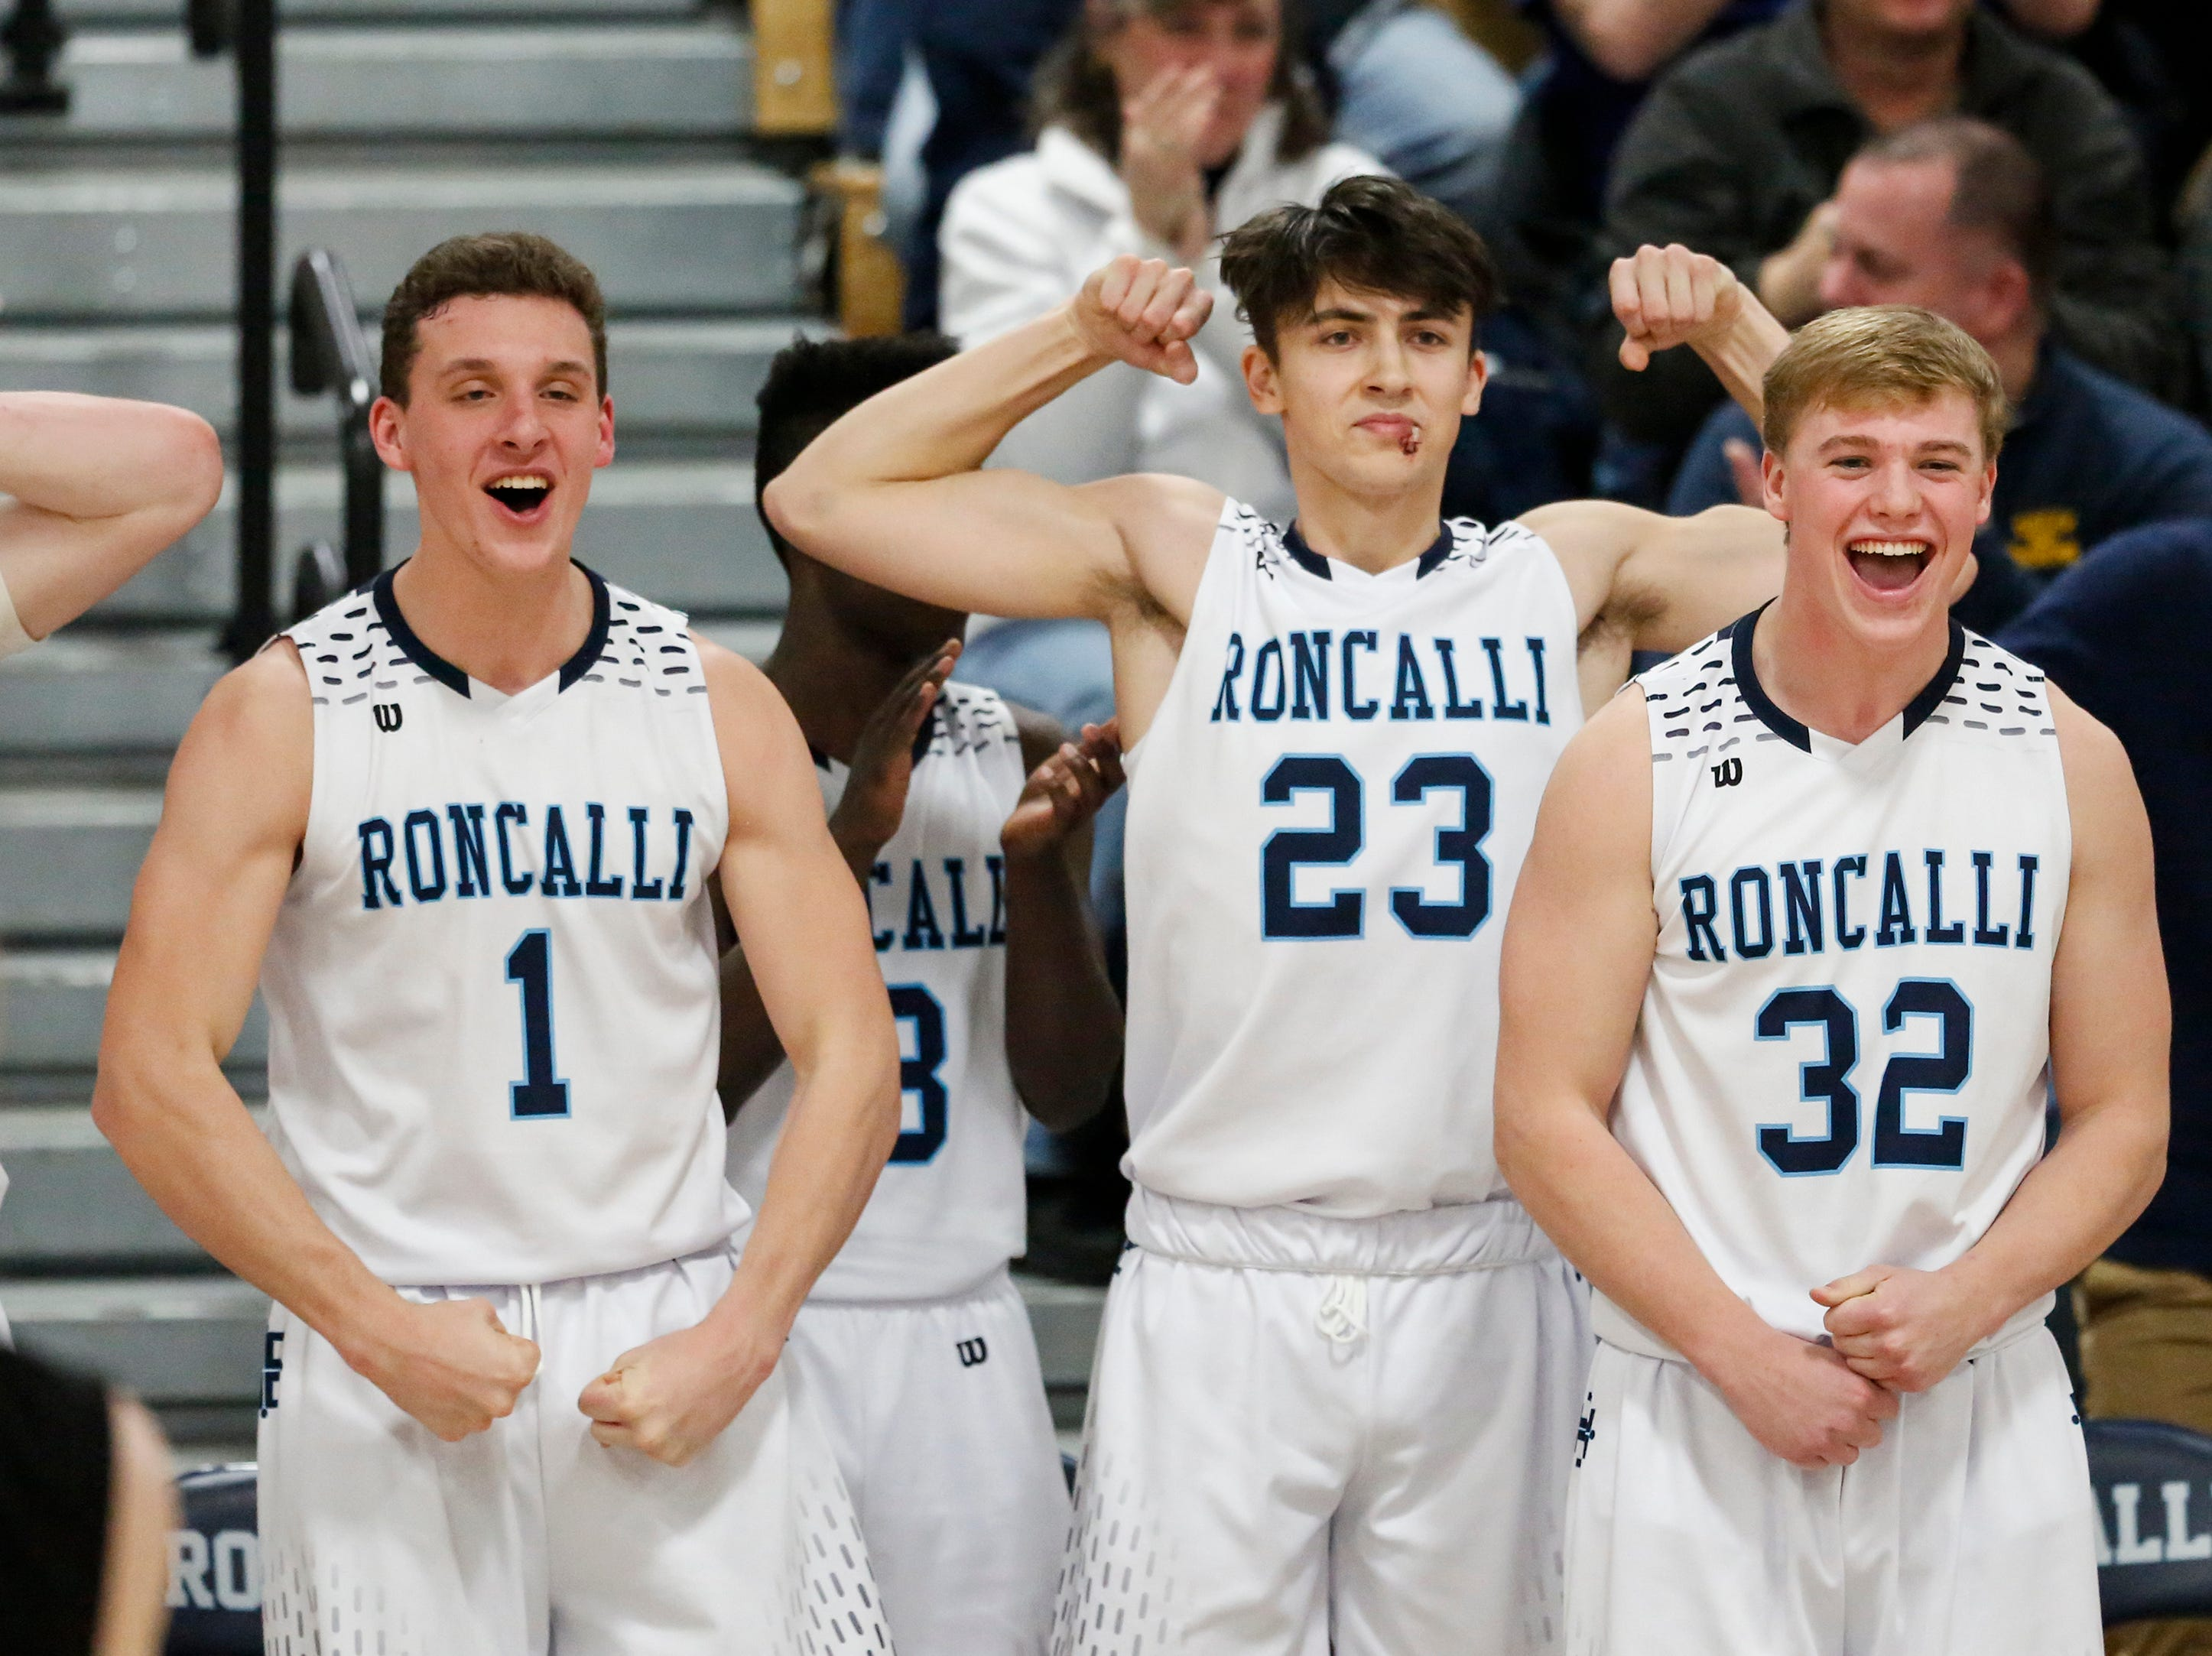 Roncalli's Daniel Burgarino, Jack Beckner and Connor Jacoby react to a shot against Sheboygan Falls in the final minutes of the game at Roncalli High School Thursday, January 10, 2019, in Manitowoc, Wis. Joshua Clark/USA TODAY NETWORK-Wisconsin